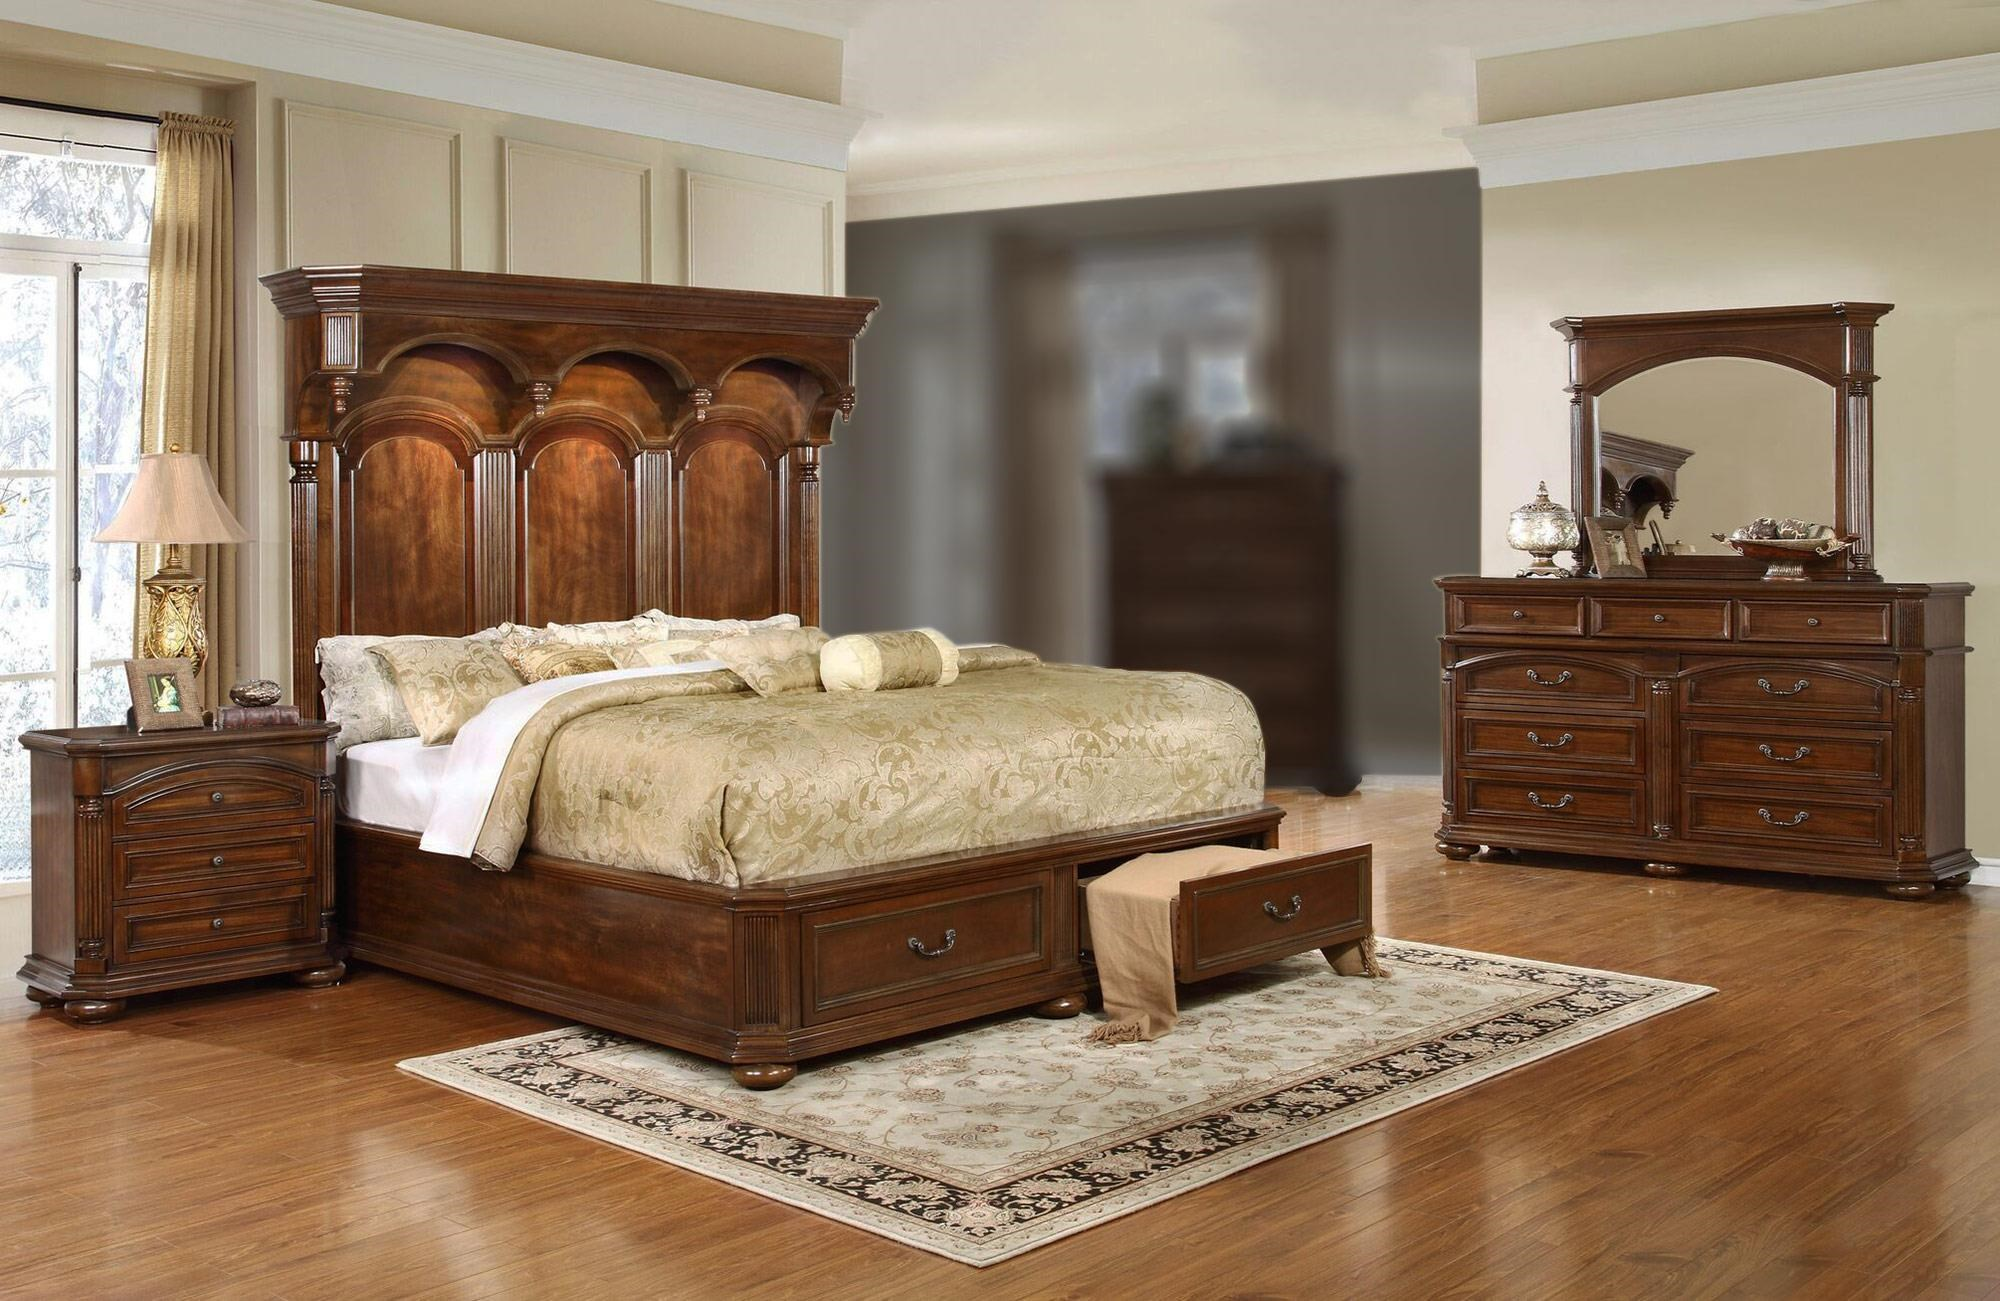 Lifestyle Empire 4PC King Storage Bedroom Set - Item Number: C6258A-4PC-KBR